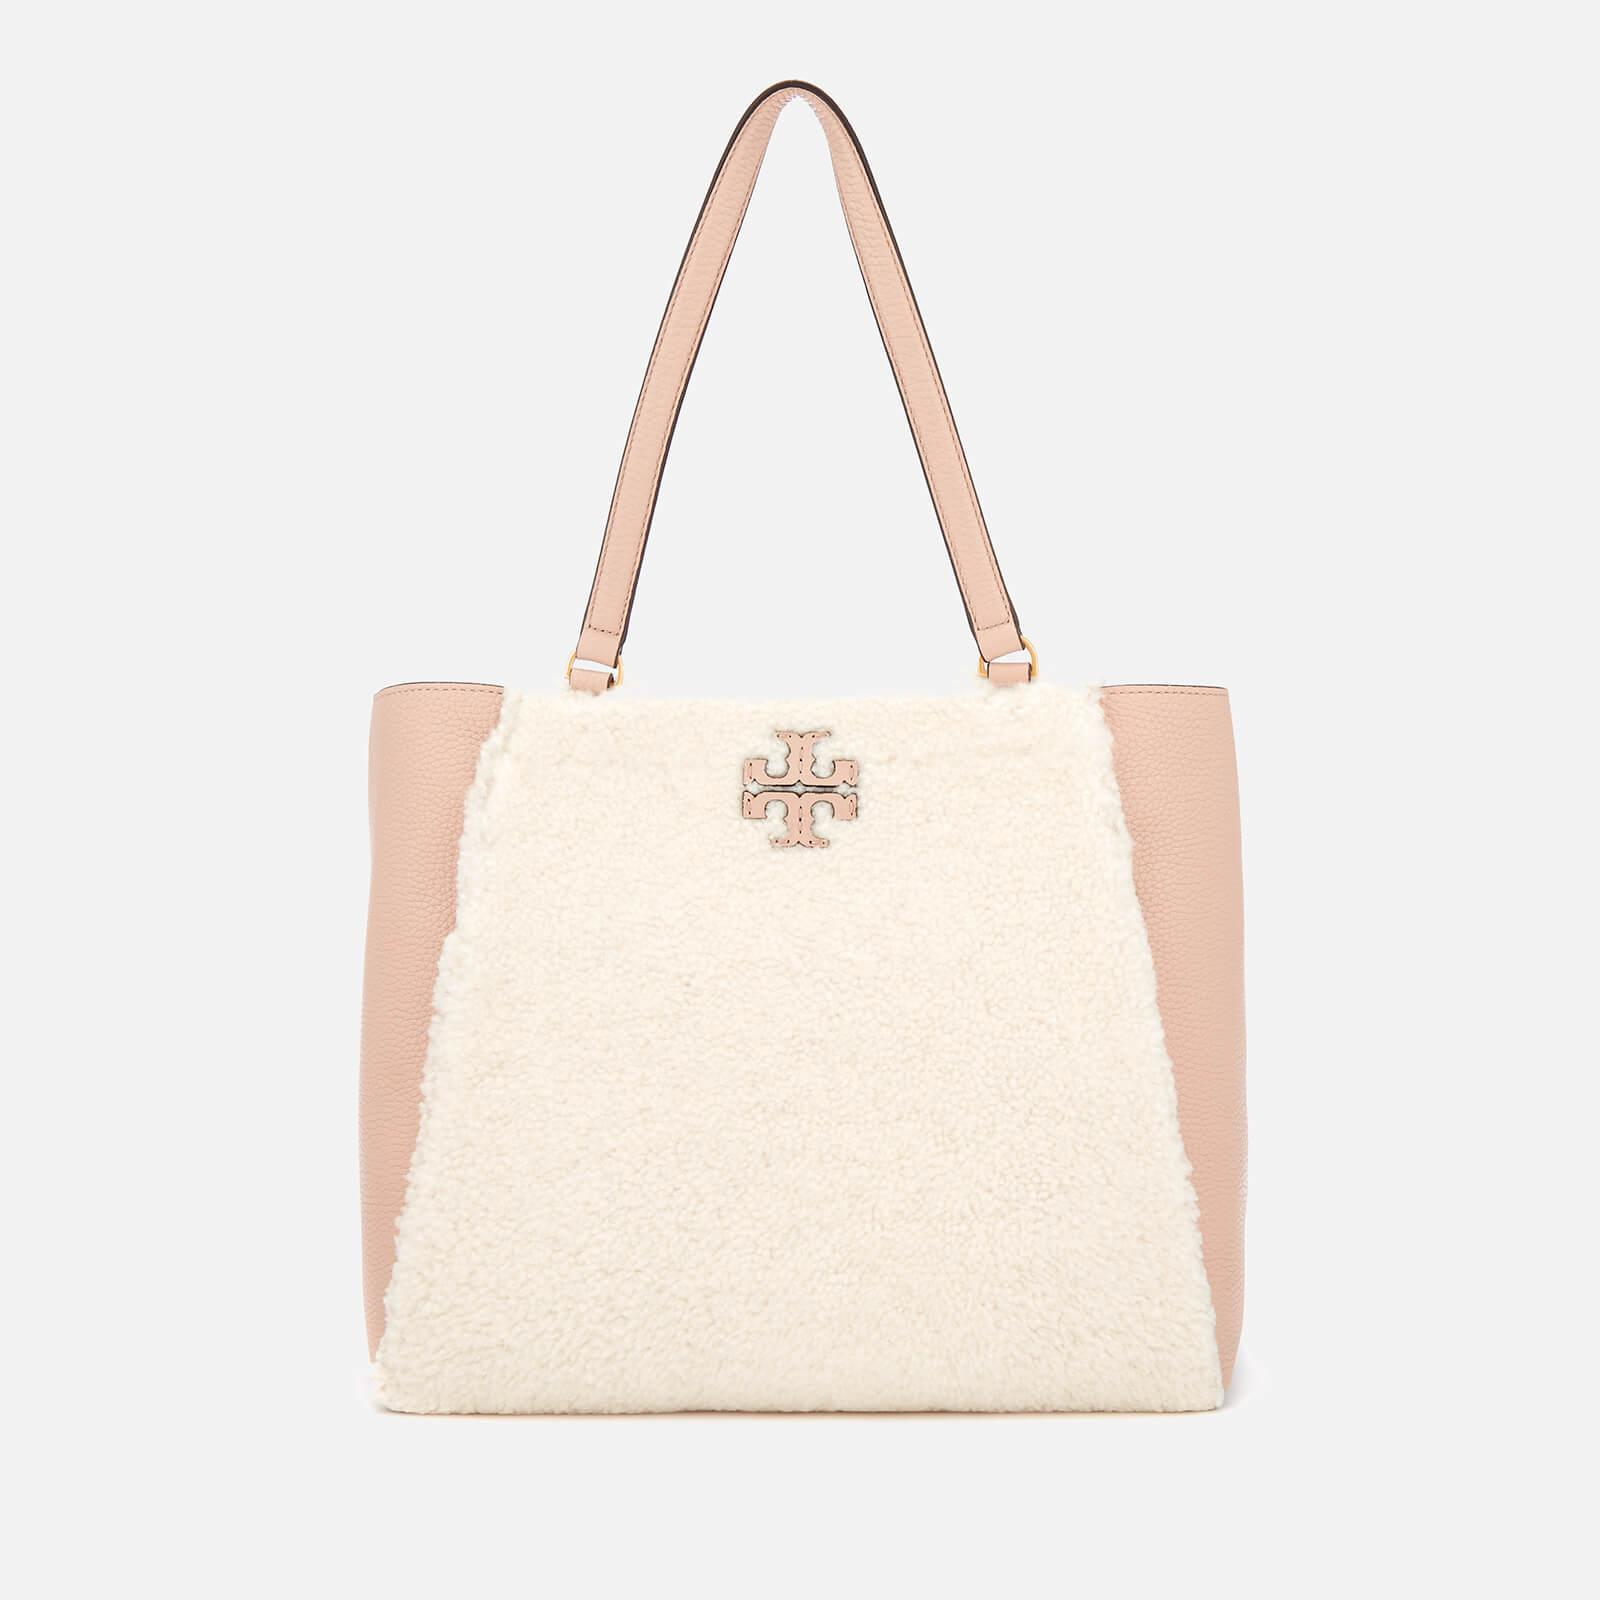 4fe34b547a0a Tory Burch Mcgraw Shearling Carryall Bag in Natural - Lyst